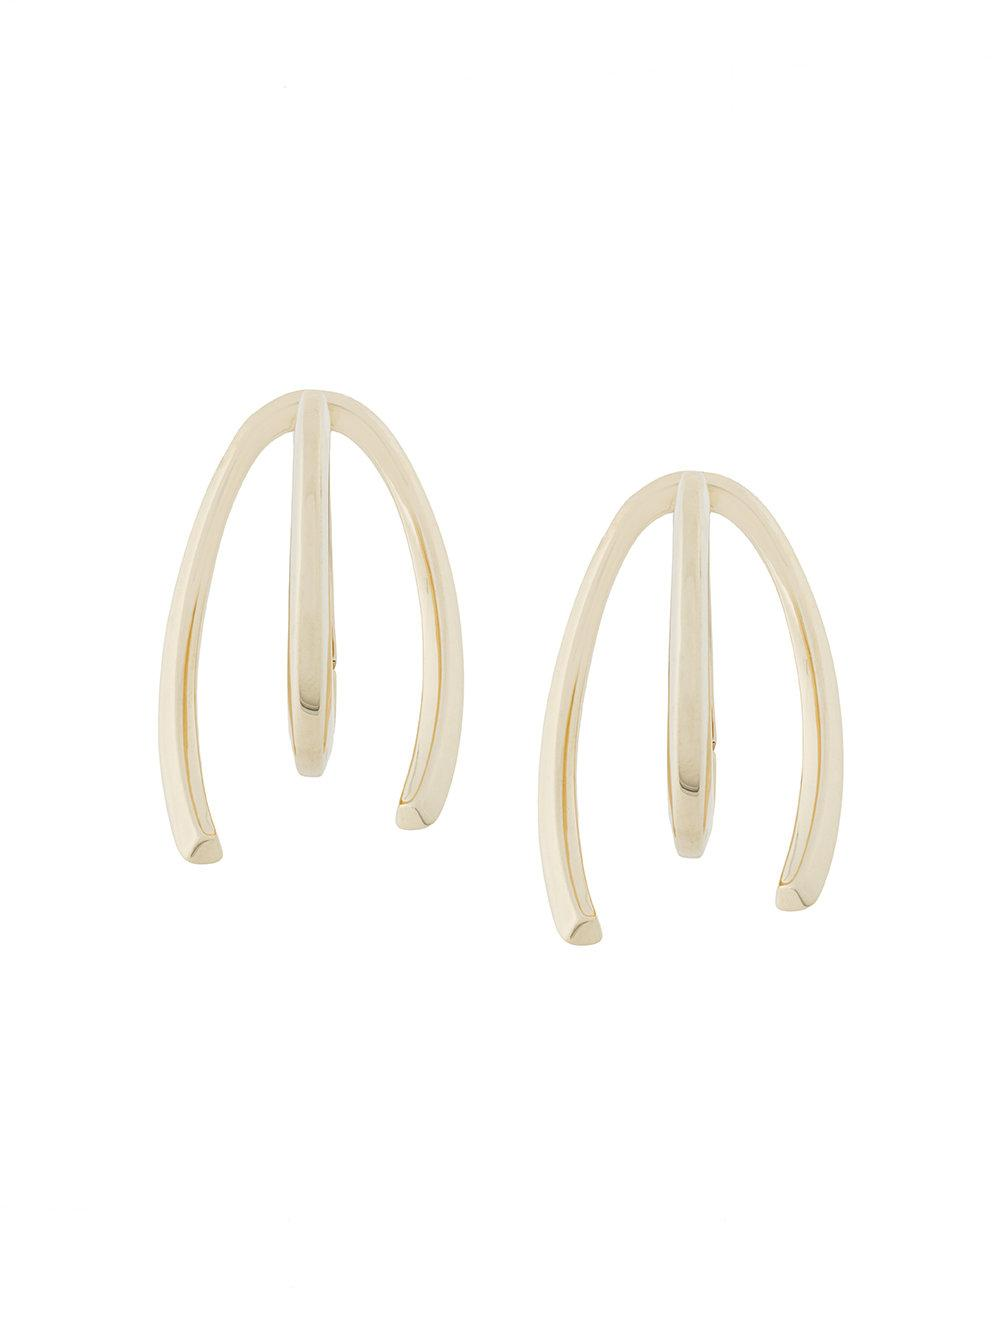 Bea Bongiasca Honeysuckle Love Ties Earrings